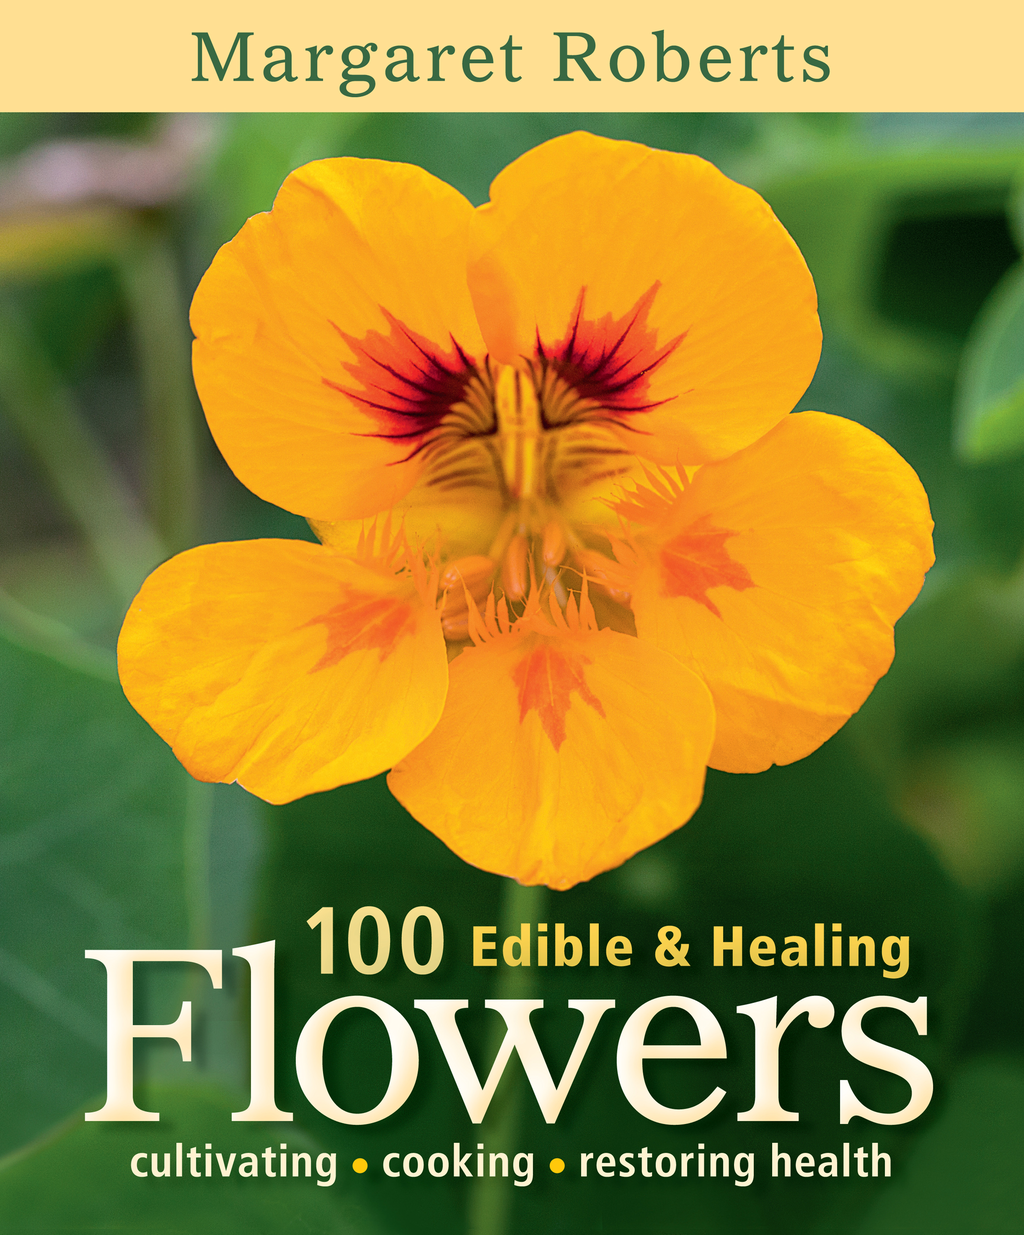 100 Edible & Healing Flowers cultivating - cooking - restoring health